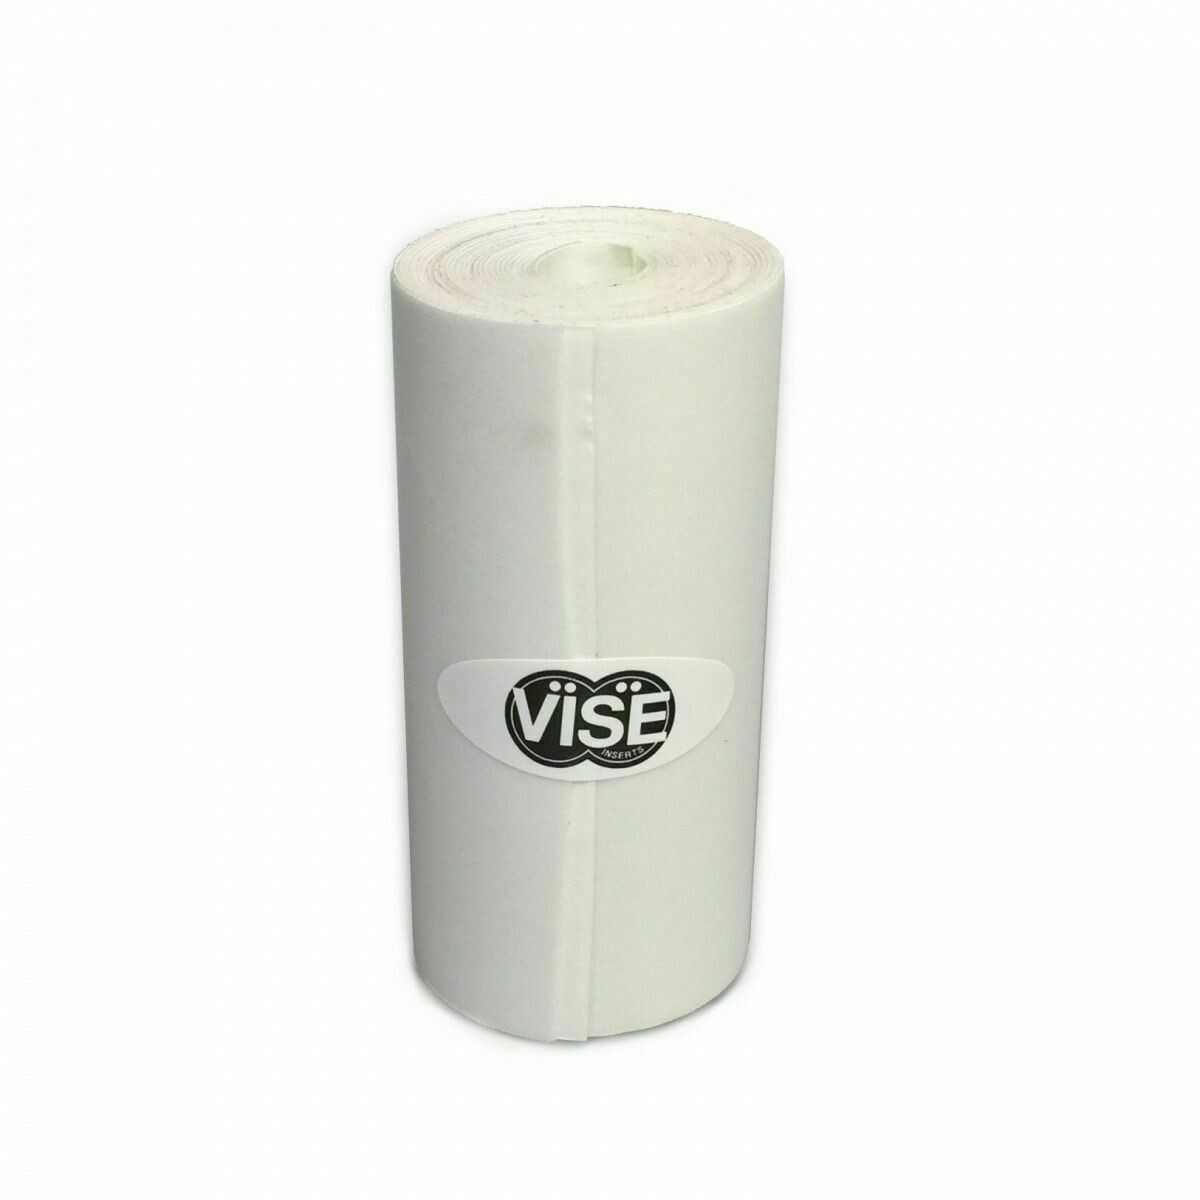 Vise Bio Skin Ultra Protection Tape Roll